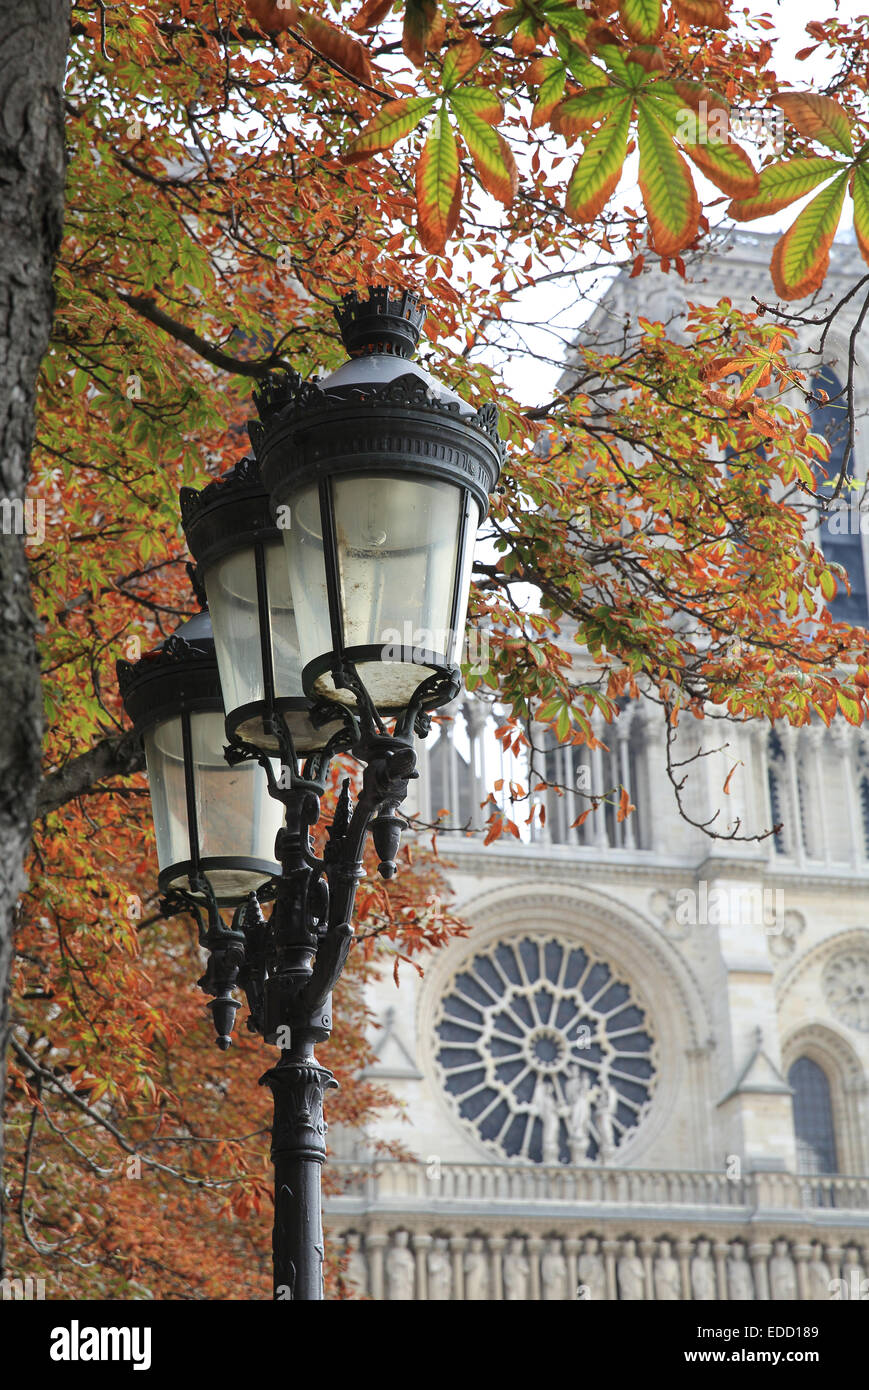 The front of Notre Dame Cathedral, in Autumn or Fall, in Paris, France - Stock Image